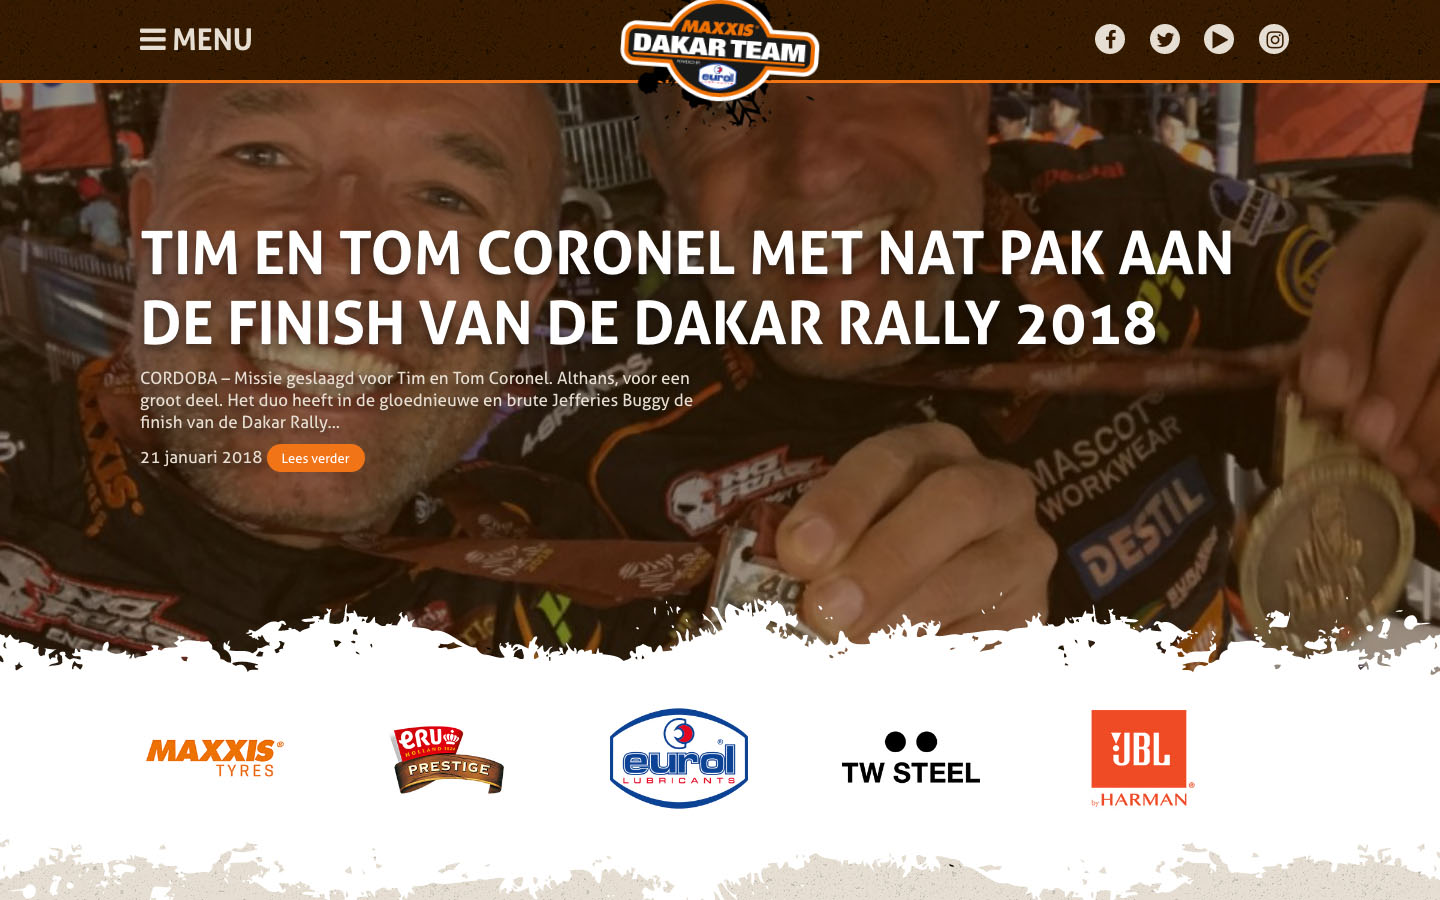 Studio29elf | Website van het Dakar Rally team van Tim Coronel & Tom Coronel